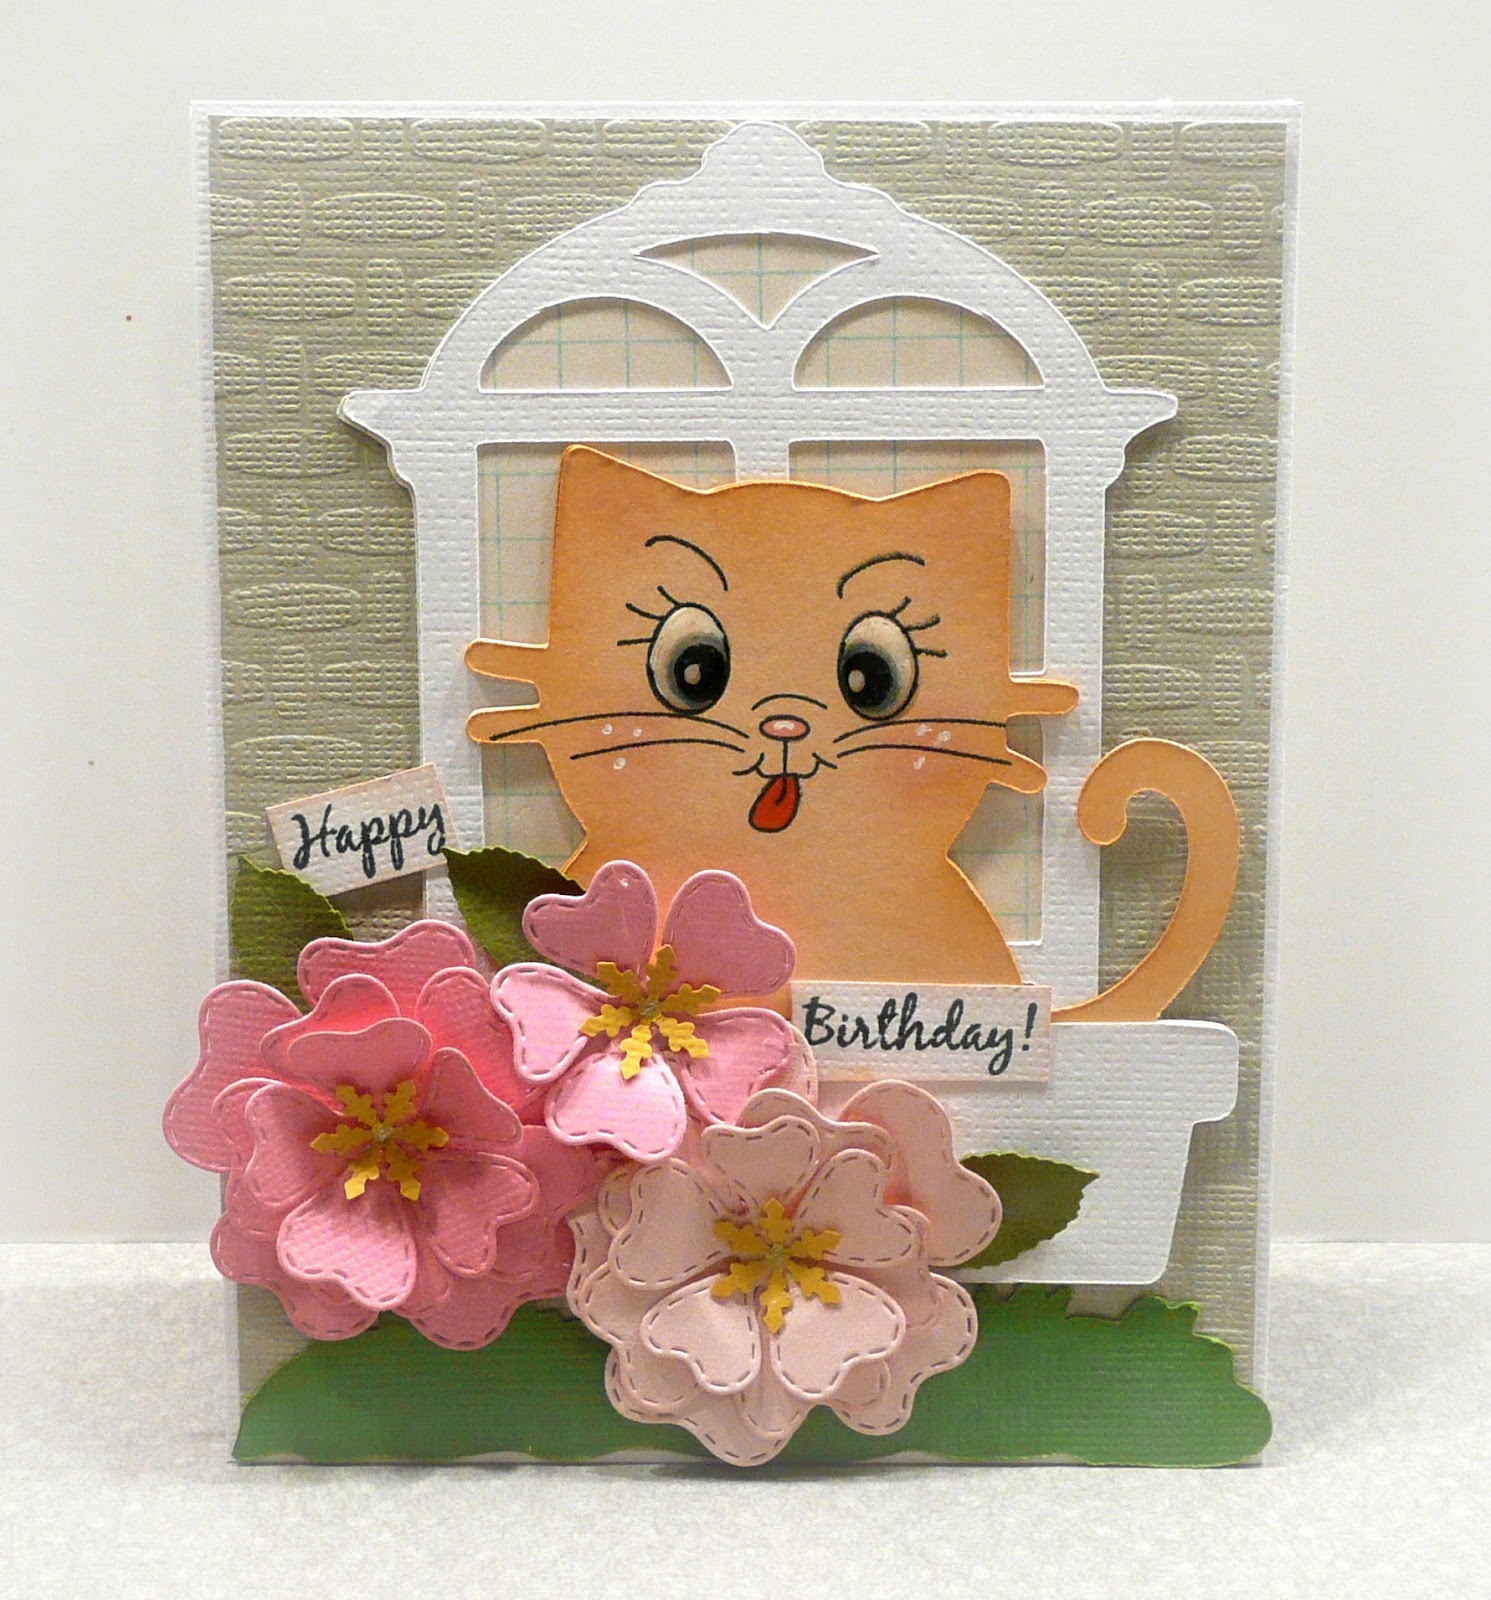 Blog Peachy Keen Stamps Peach Tinted Clear Stamp Company Based